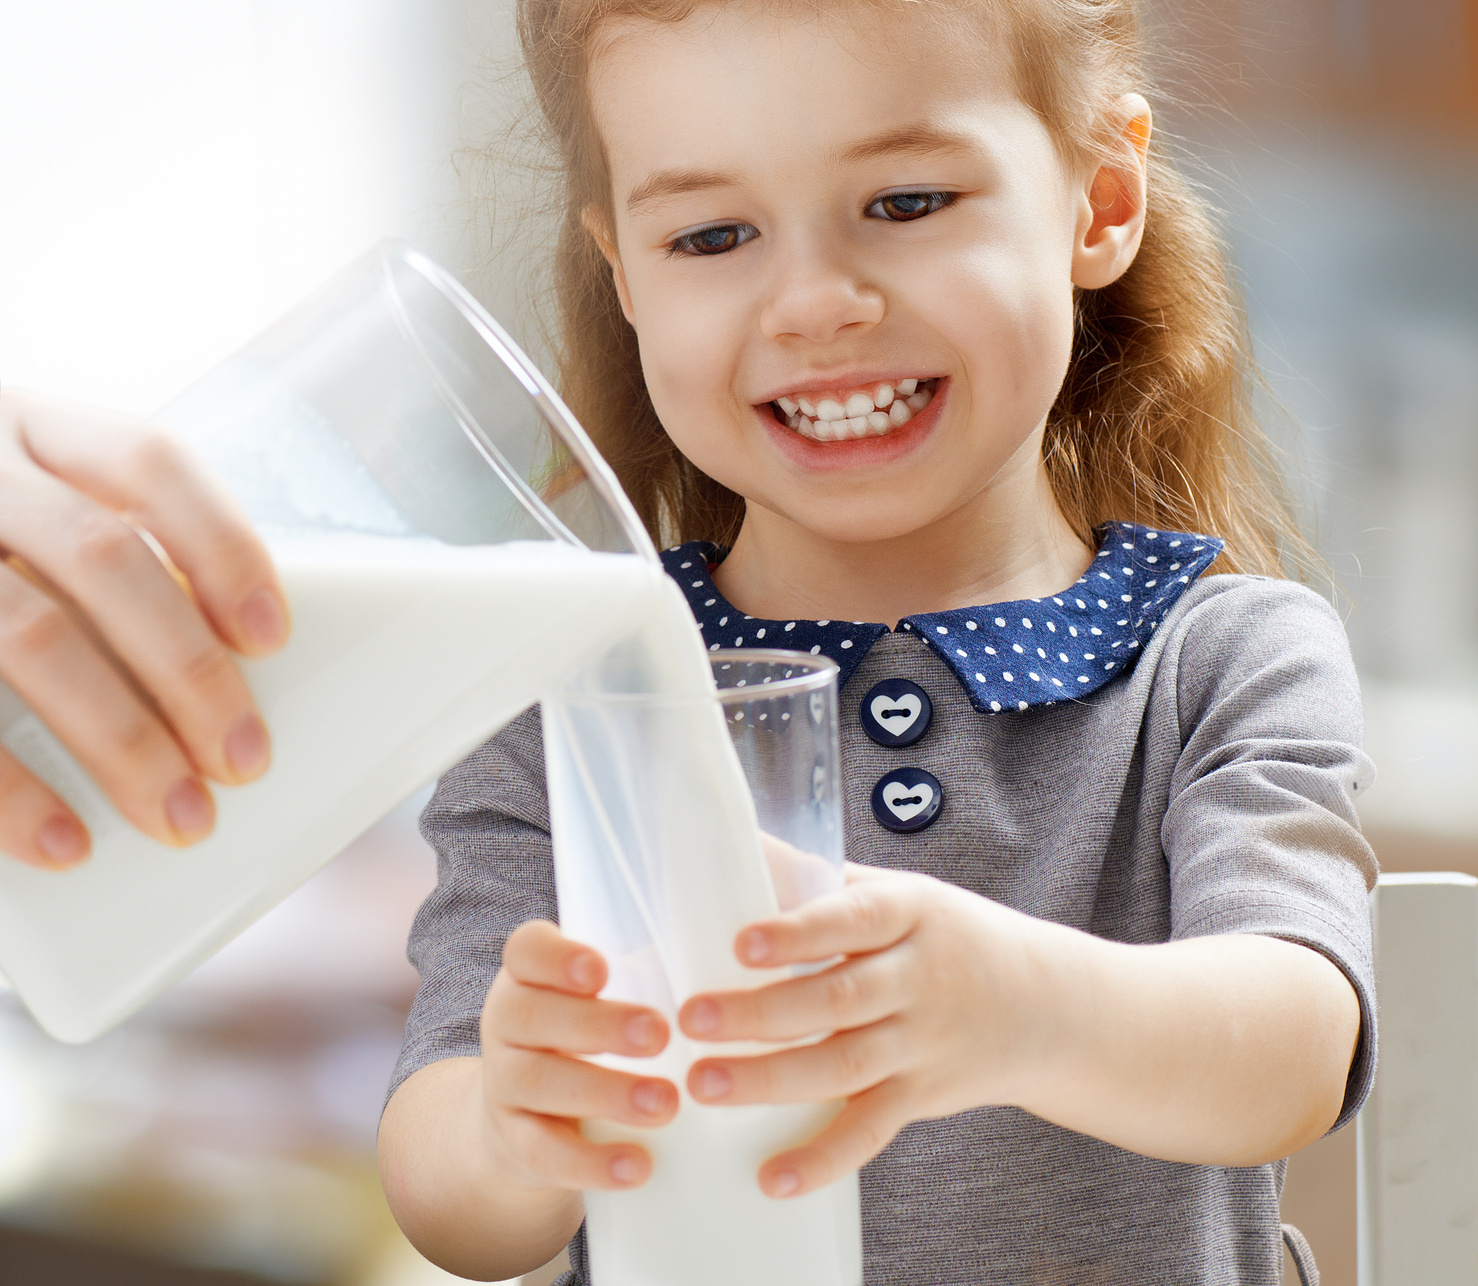 Milk poured into child's glass.